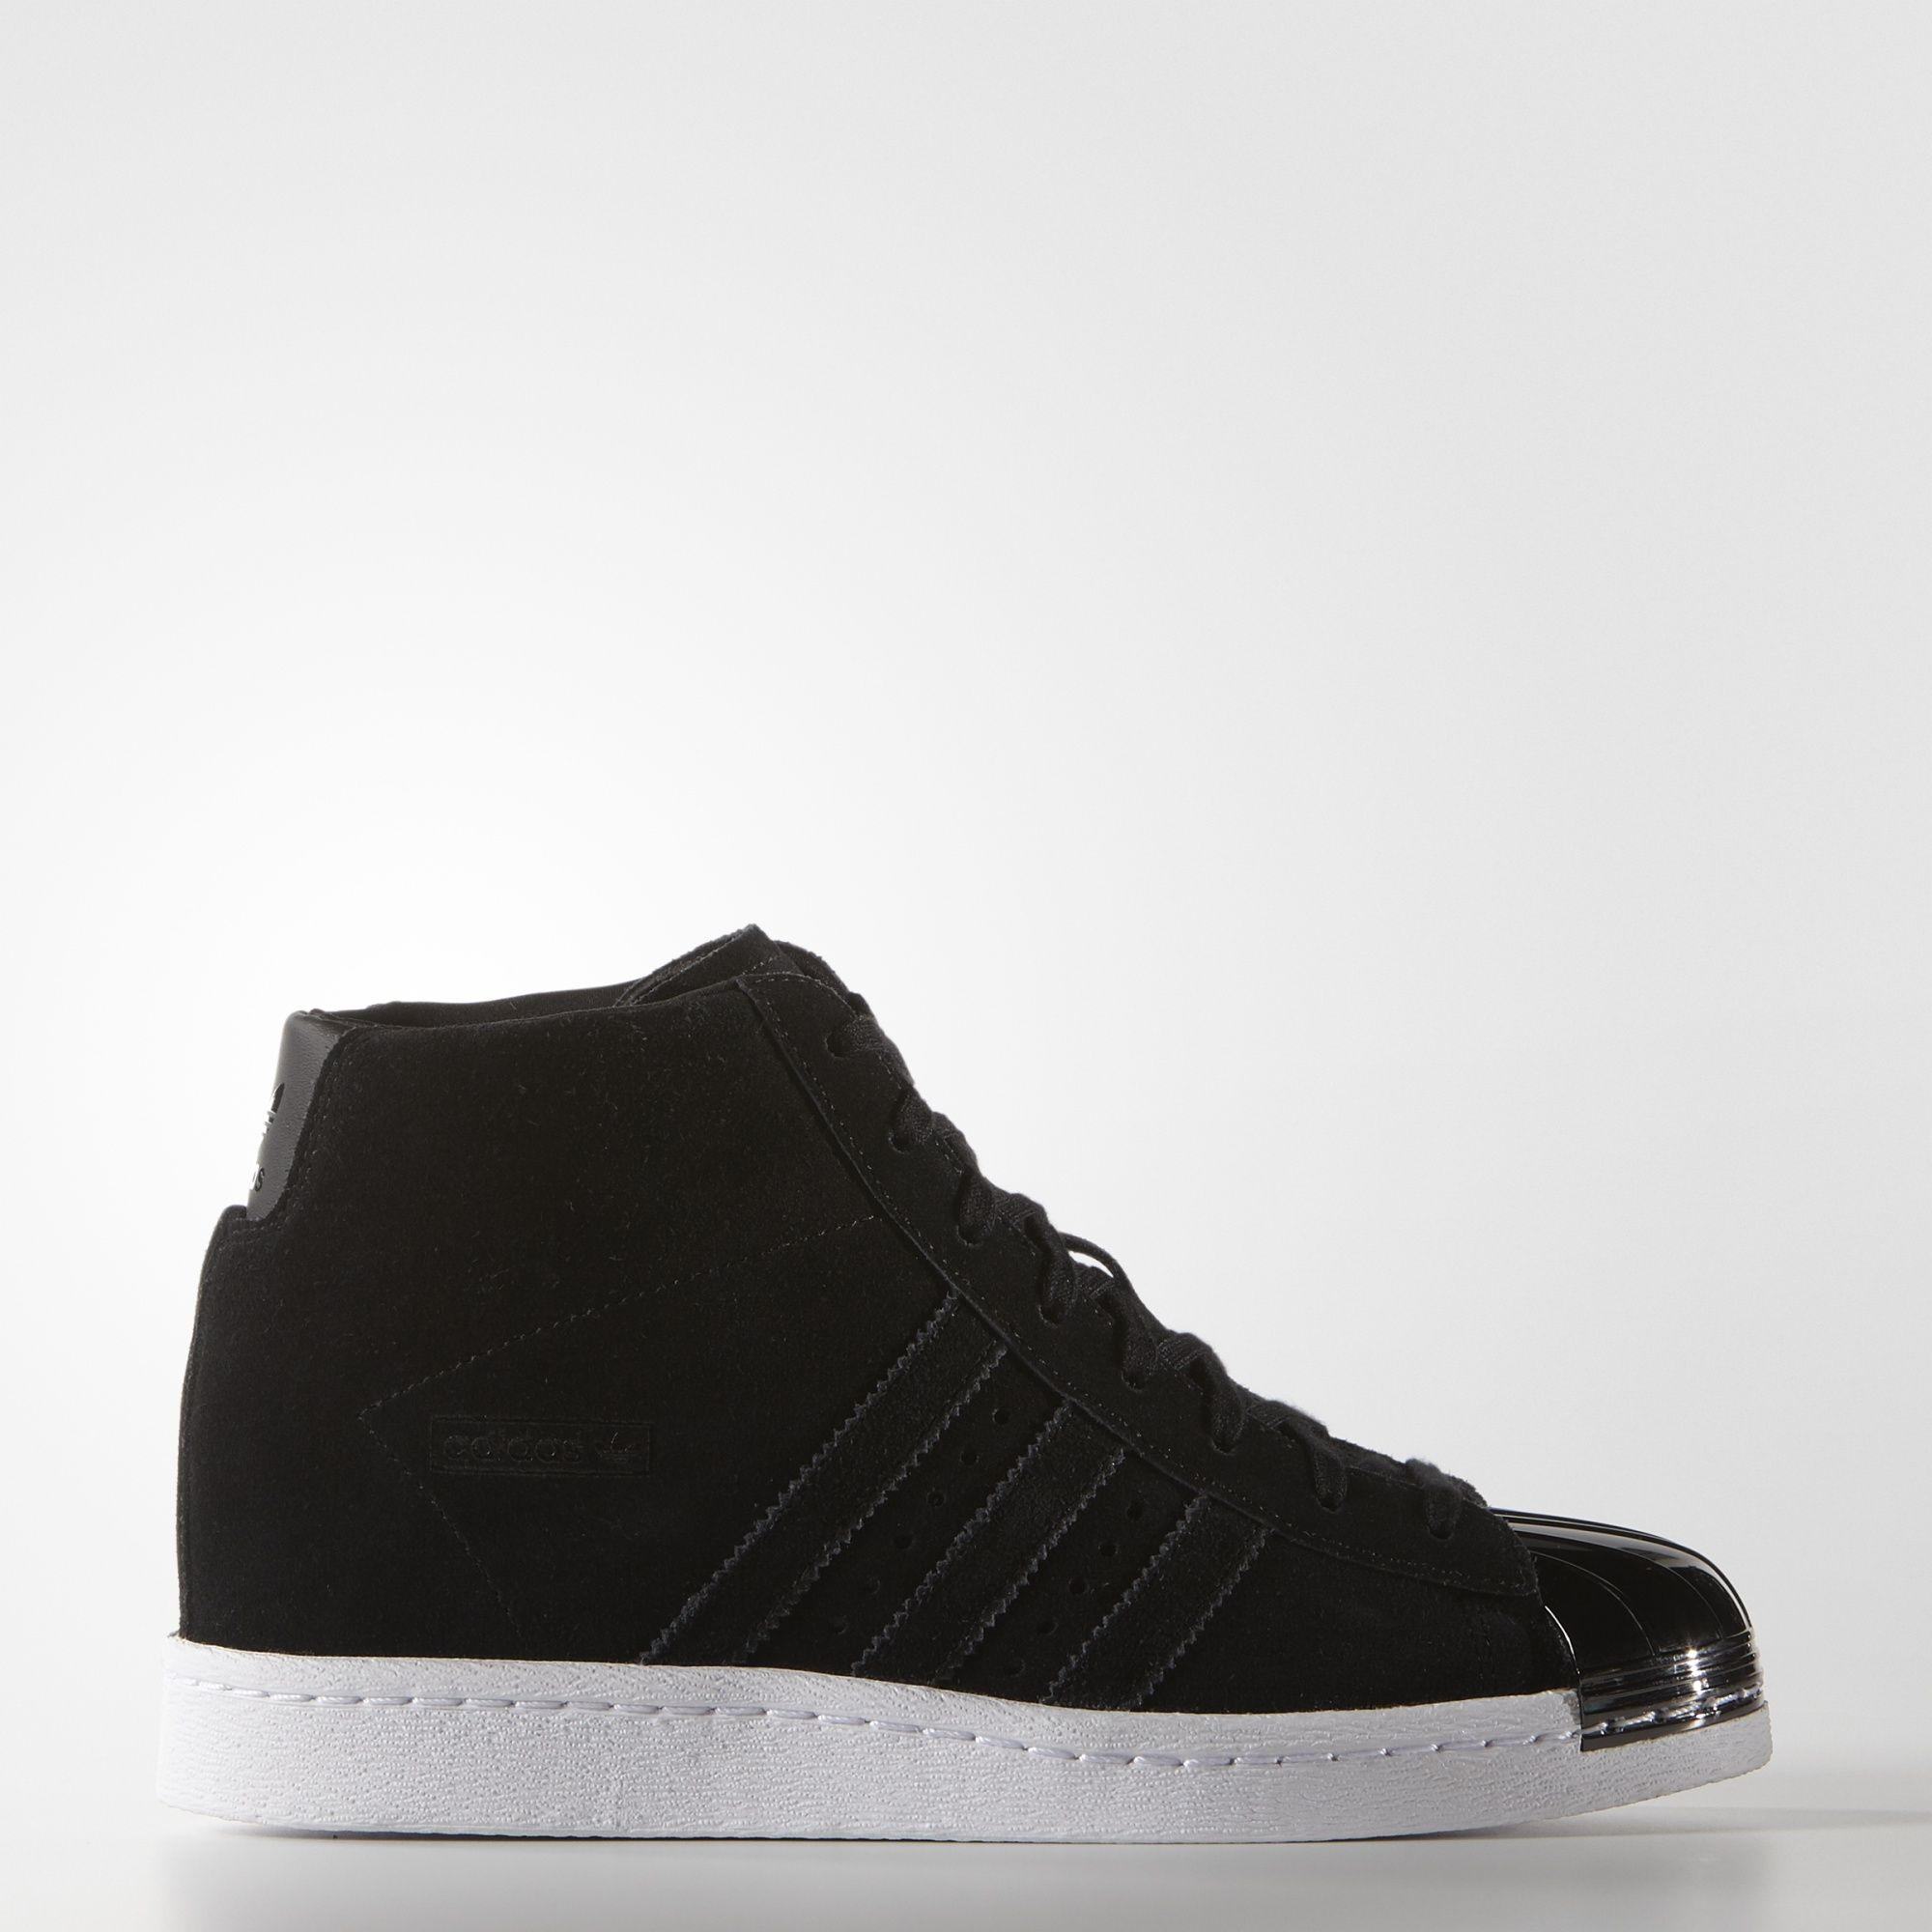 Black adidas Superstar Shoes -